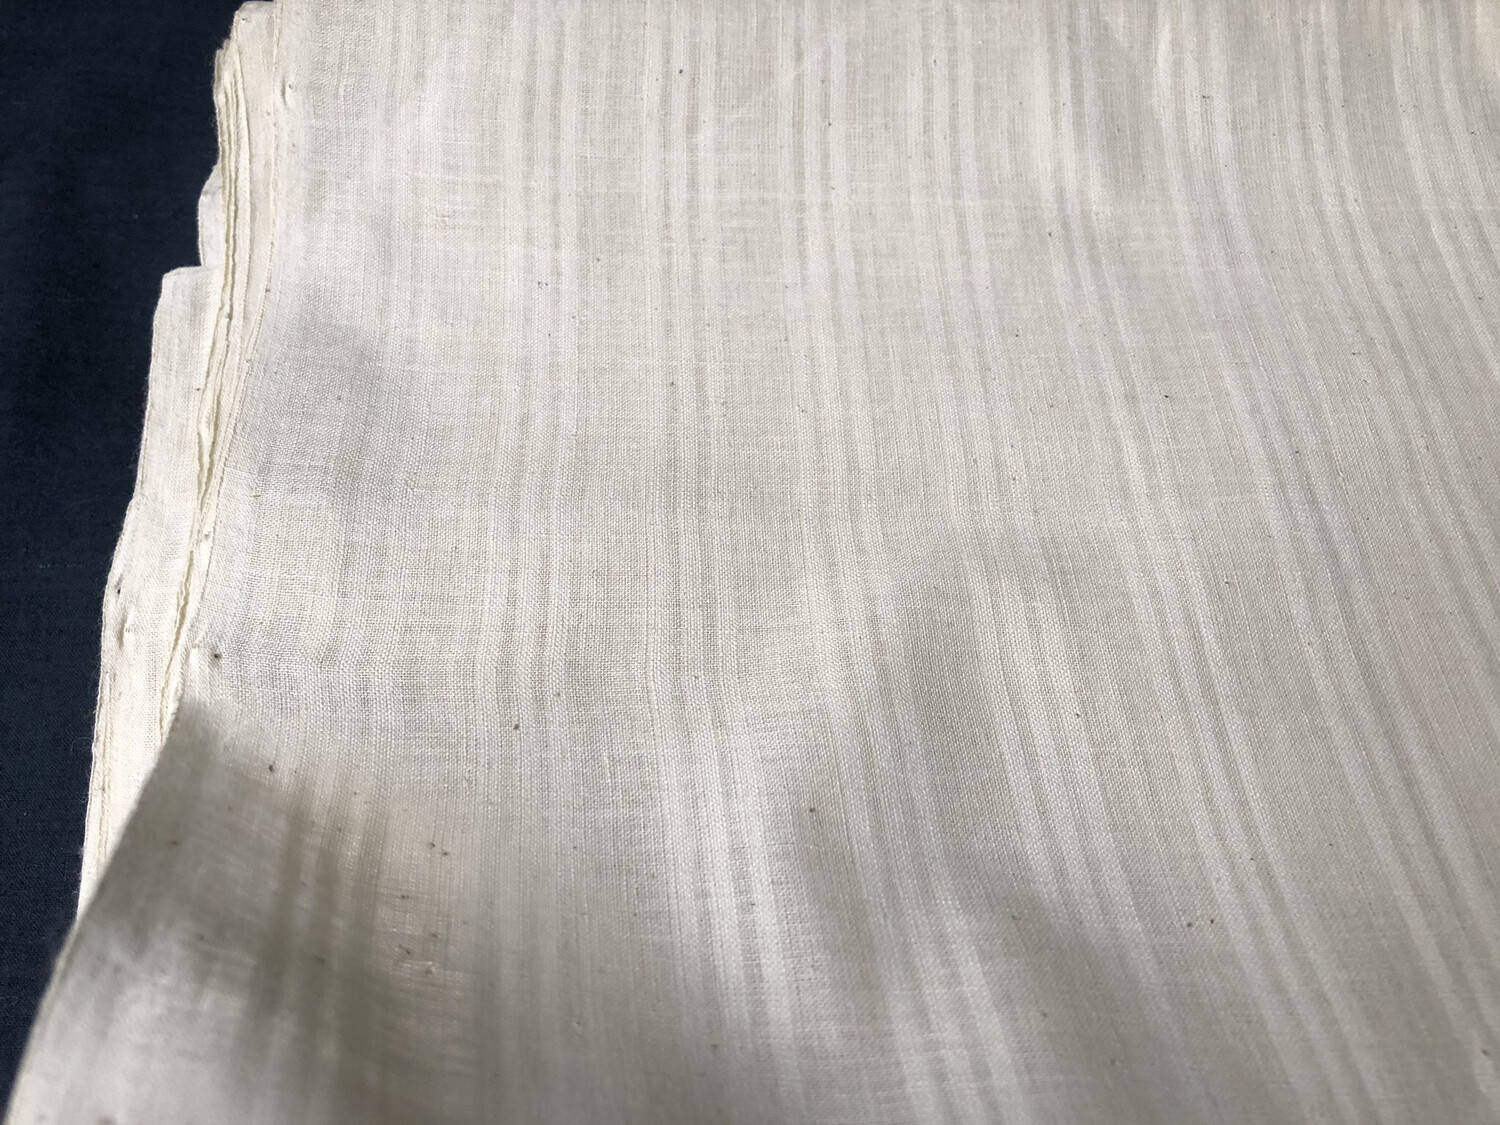 Hand Spun Hand Woven 200 Count Muslin Cotton Stripe Design Fabric